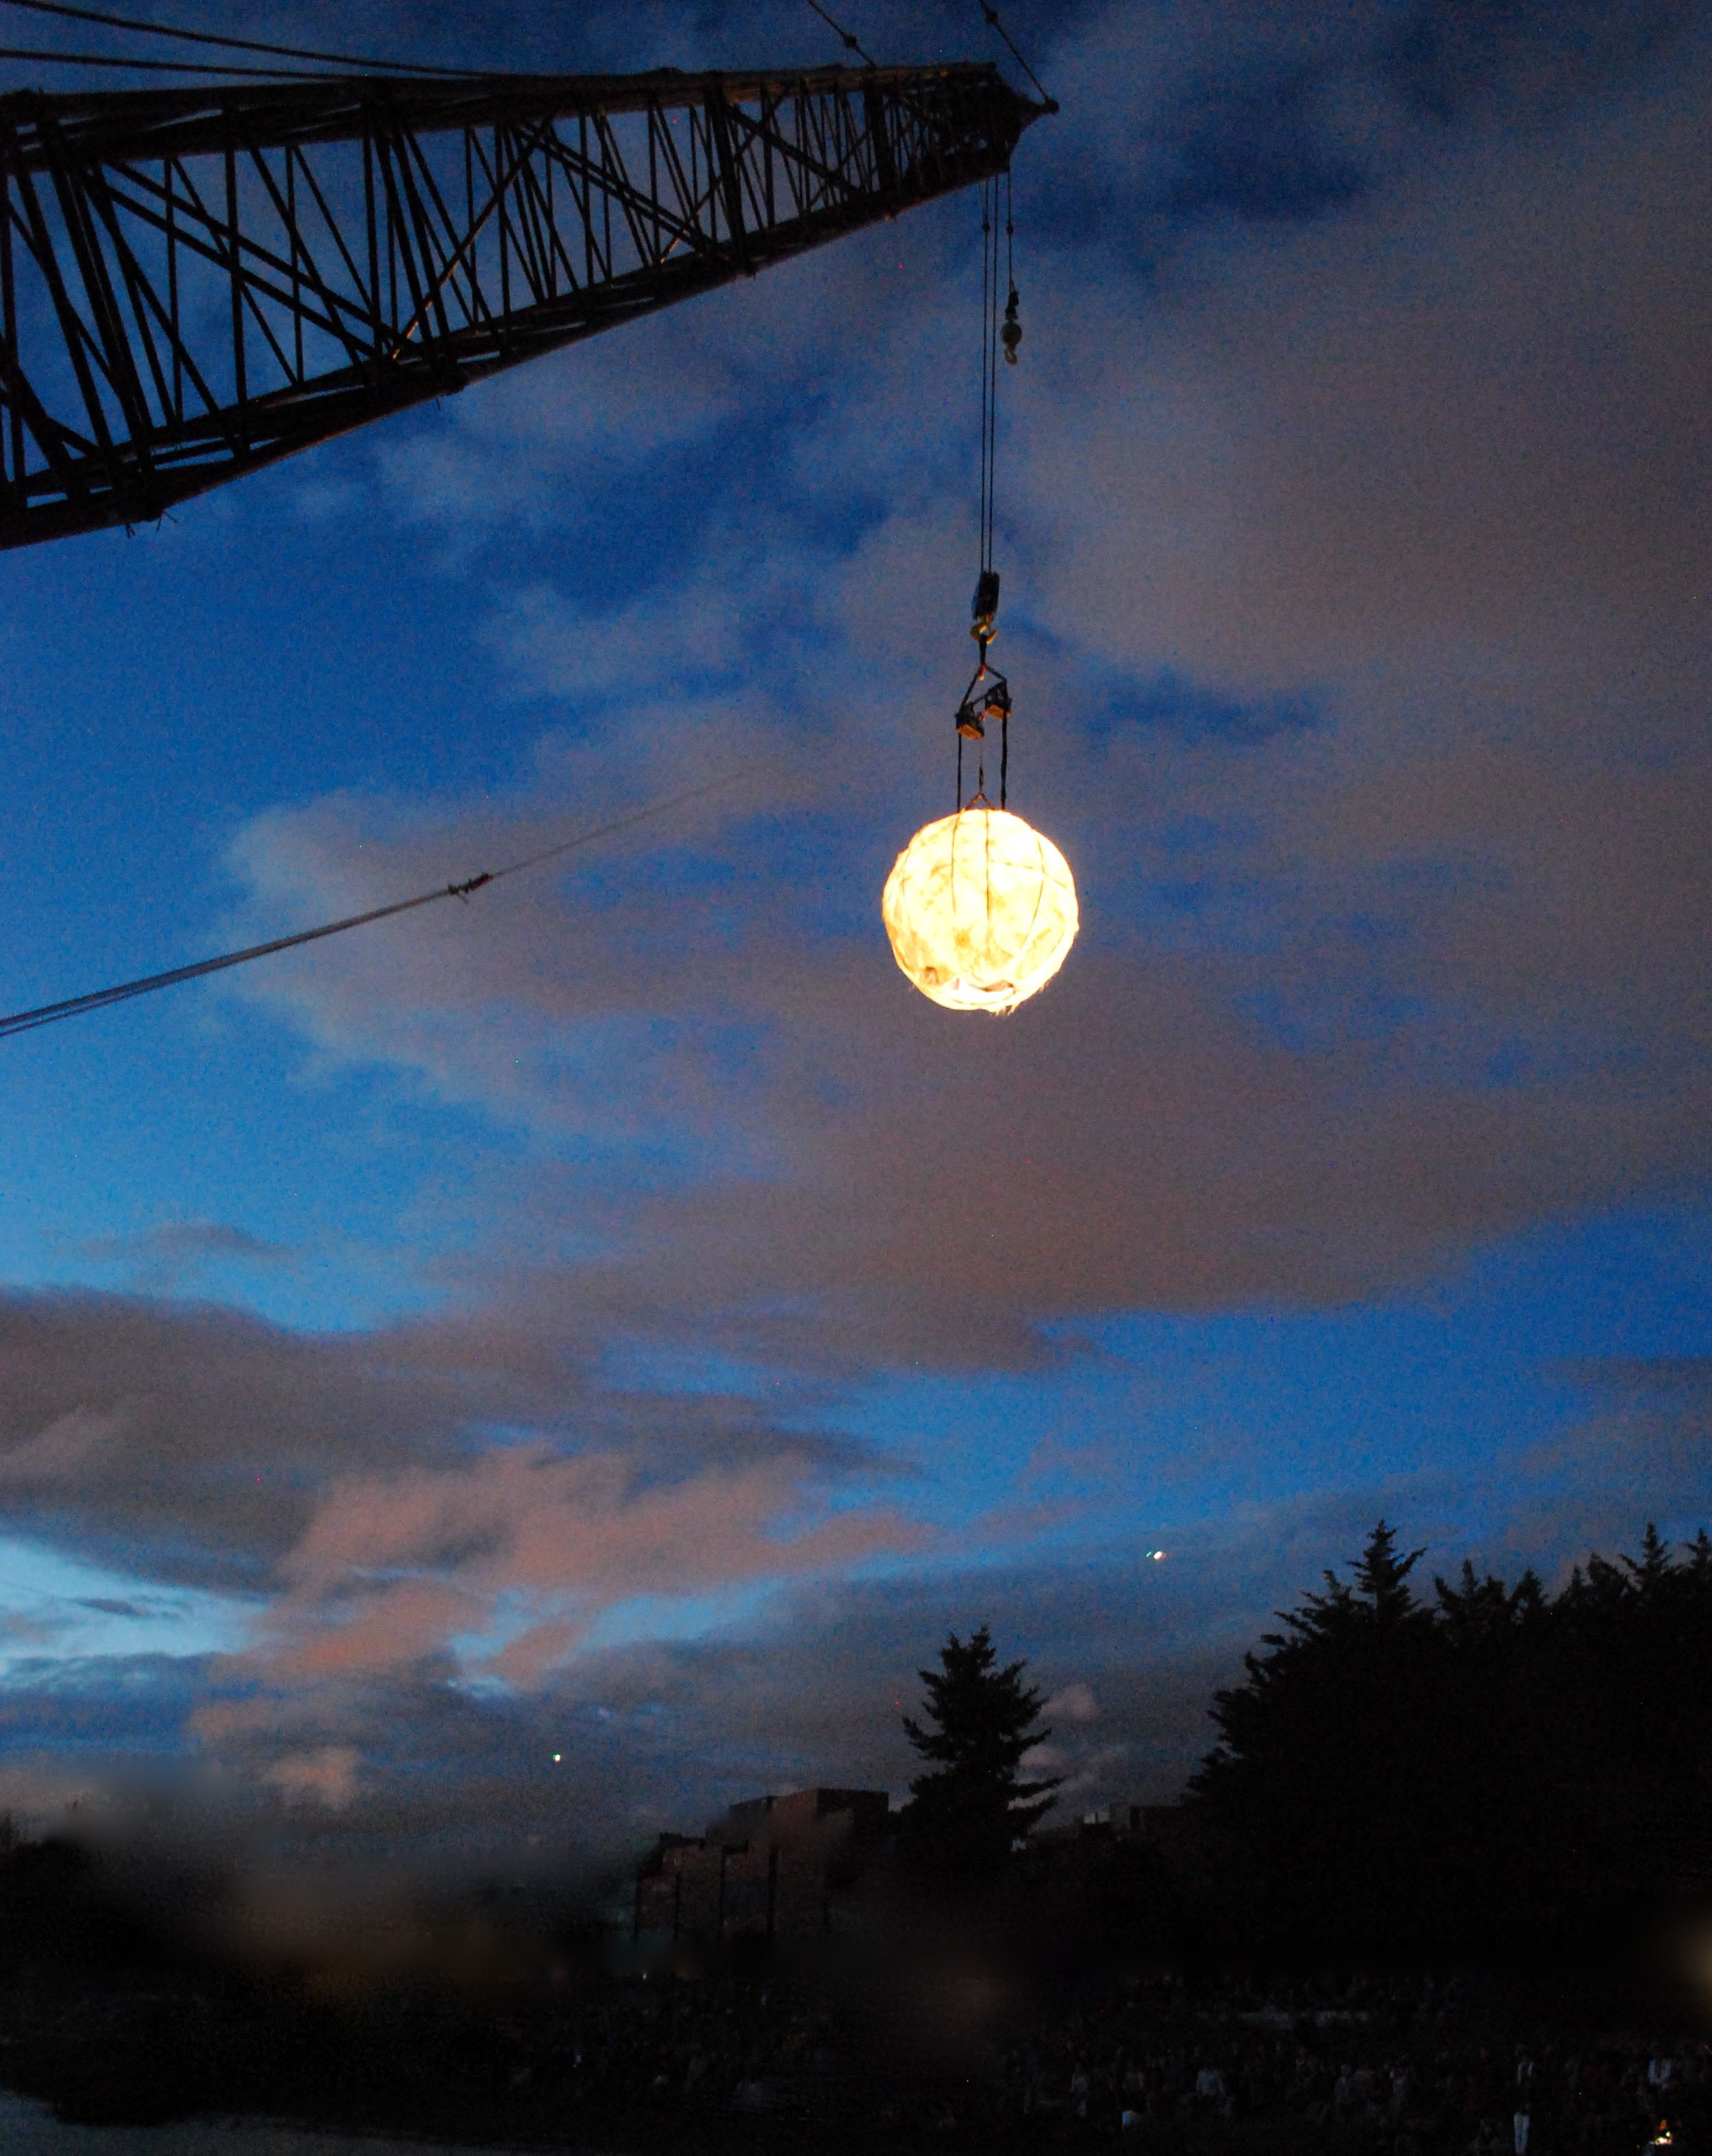 150808-tangyo-bargecrane-illuminated-moon-duwamish-riverbank.JPG